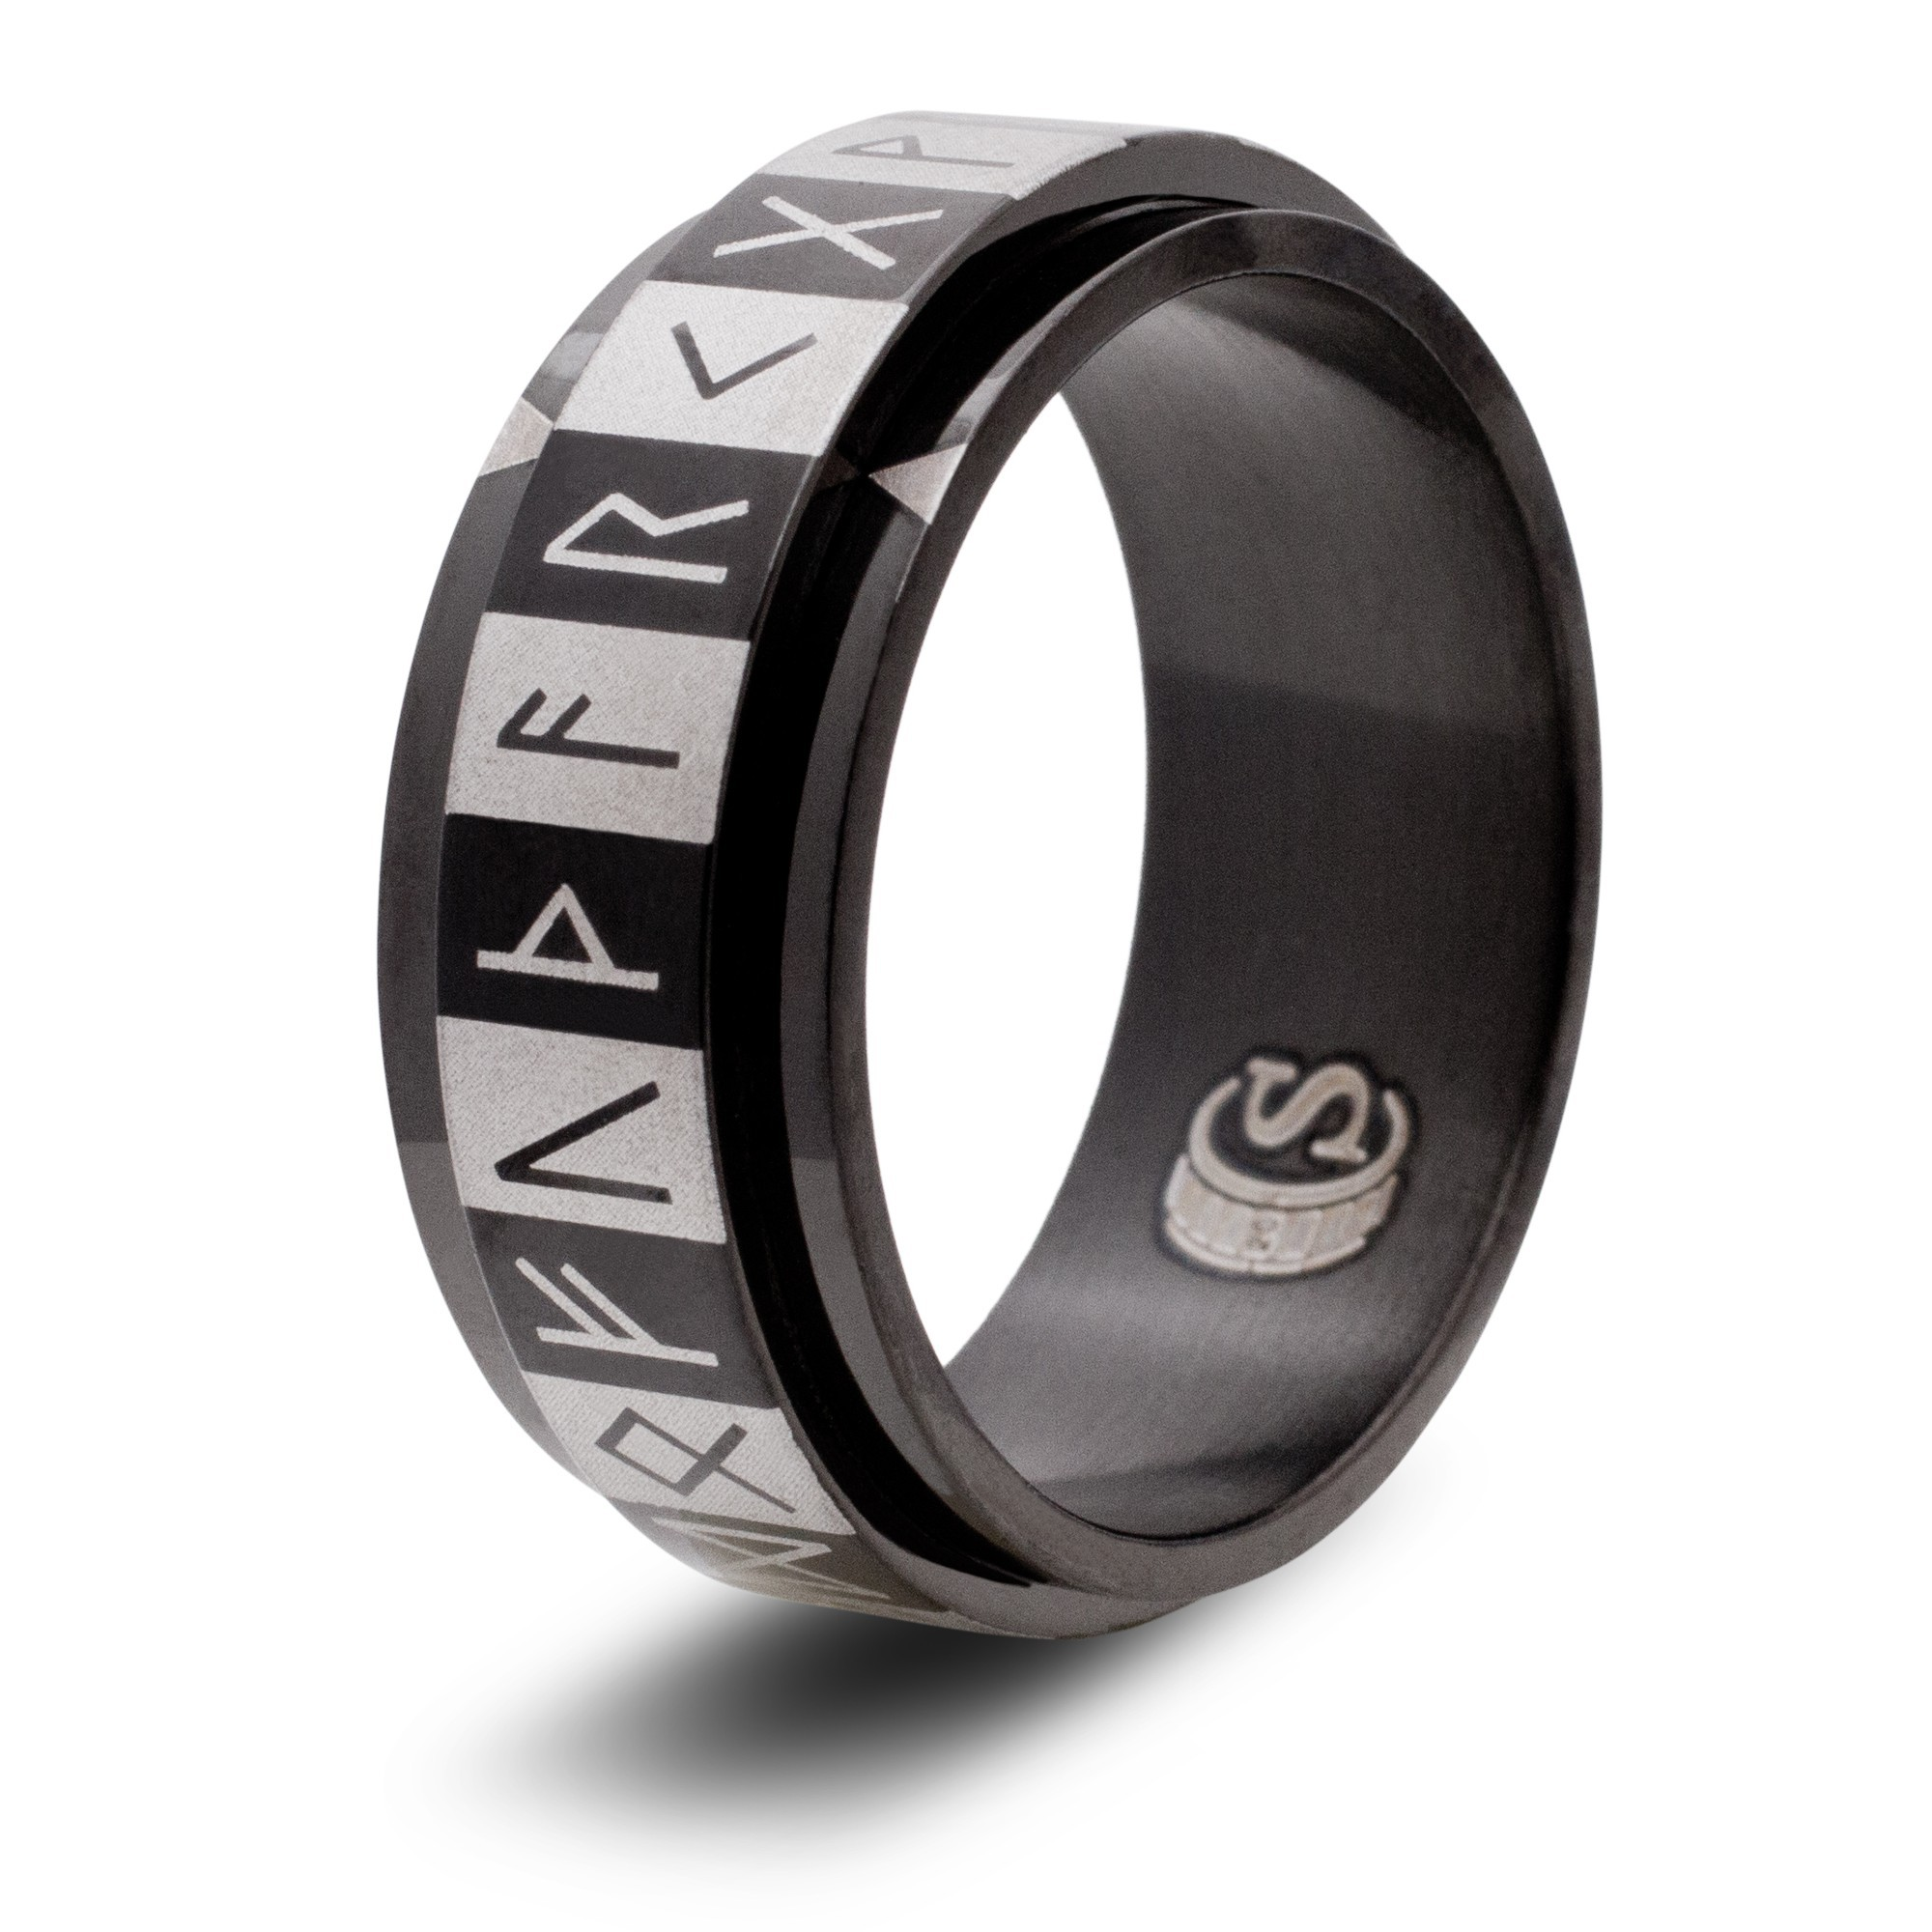 offbeat the bride ring engagement batman rings geeky wedding for discovergeek